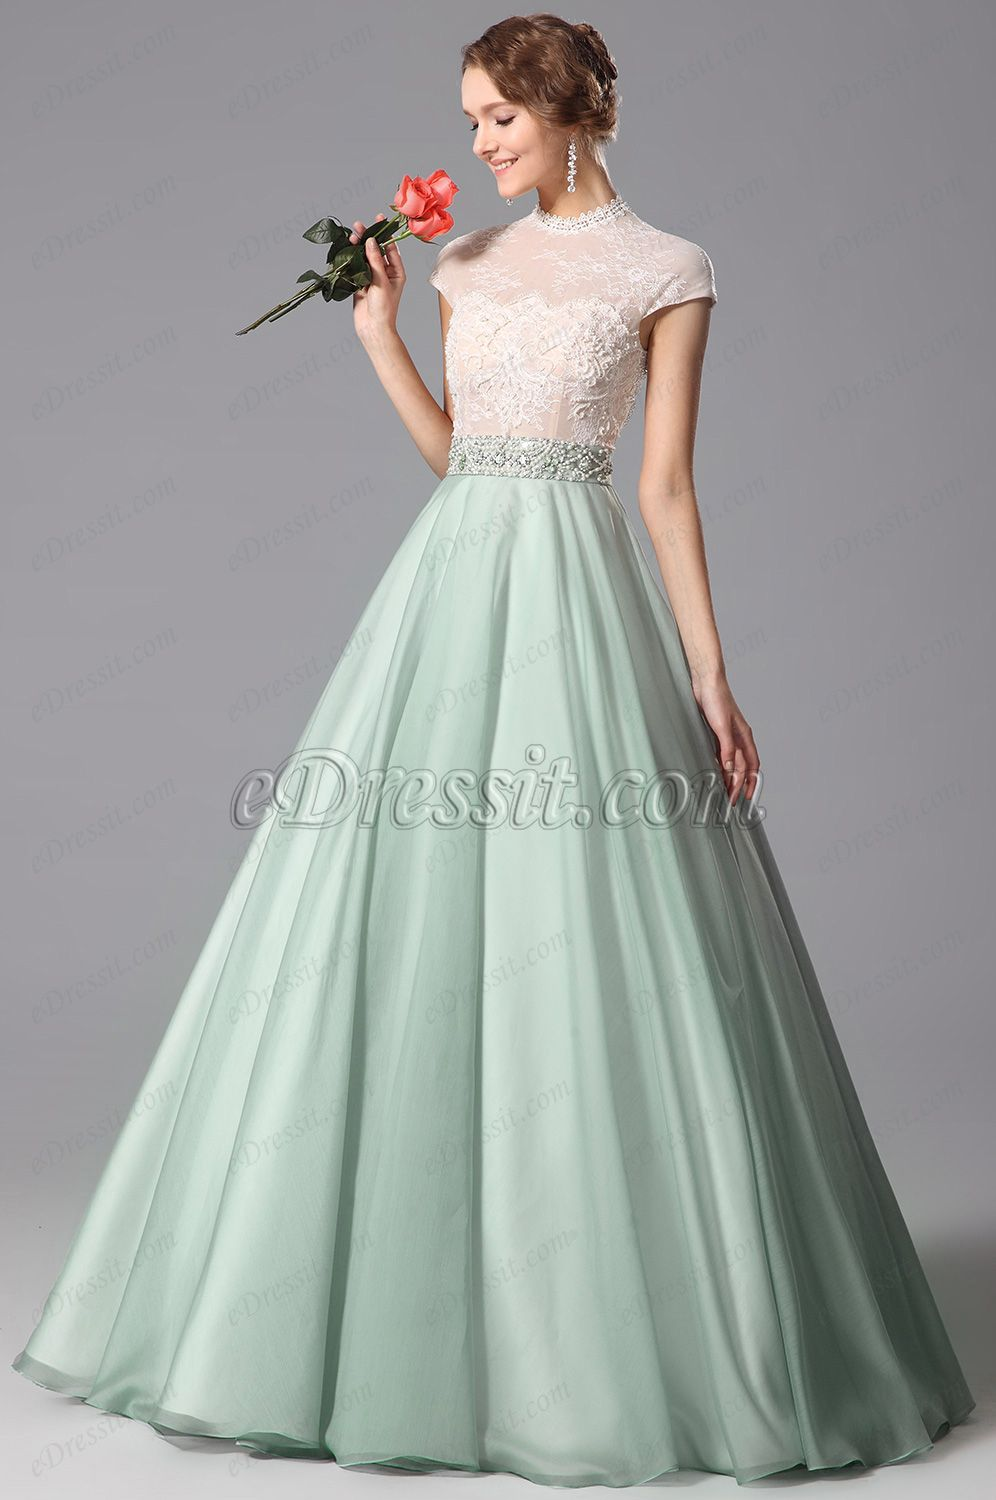 Gorgeous Light Green Overlace Graduation Formal Wear Prom Gown ...